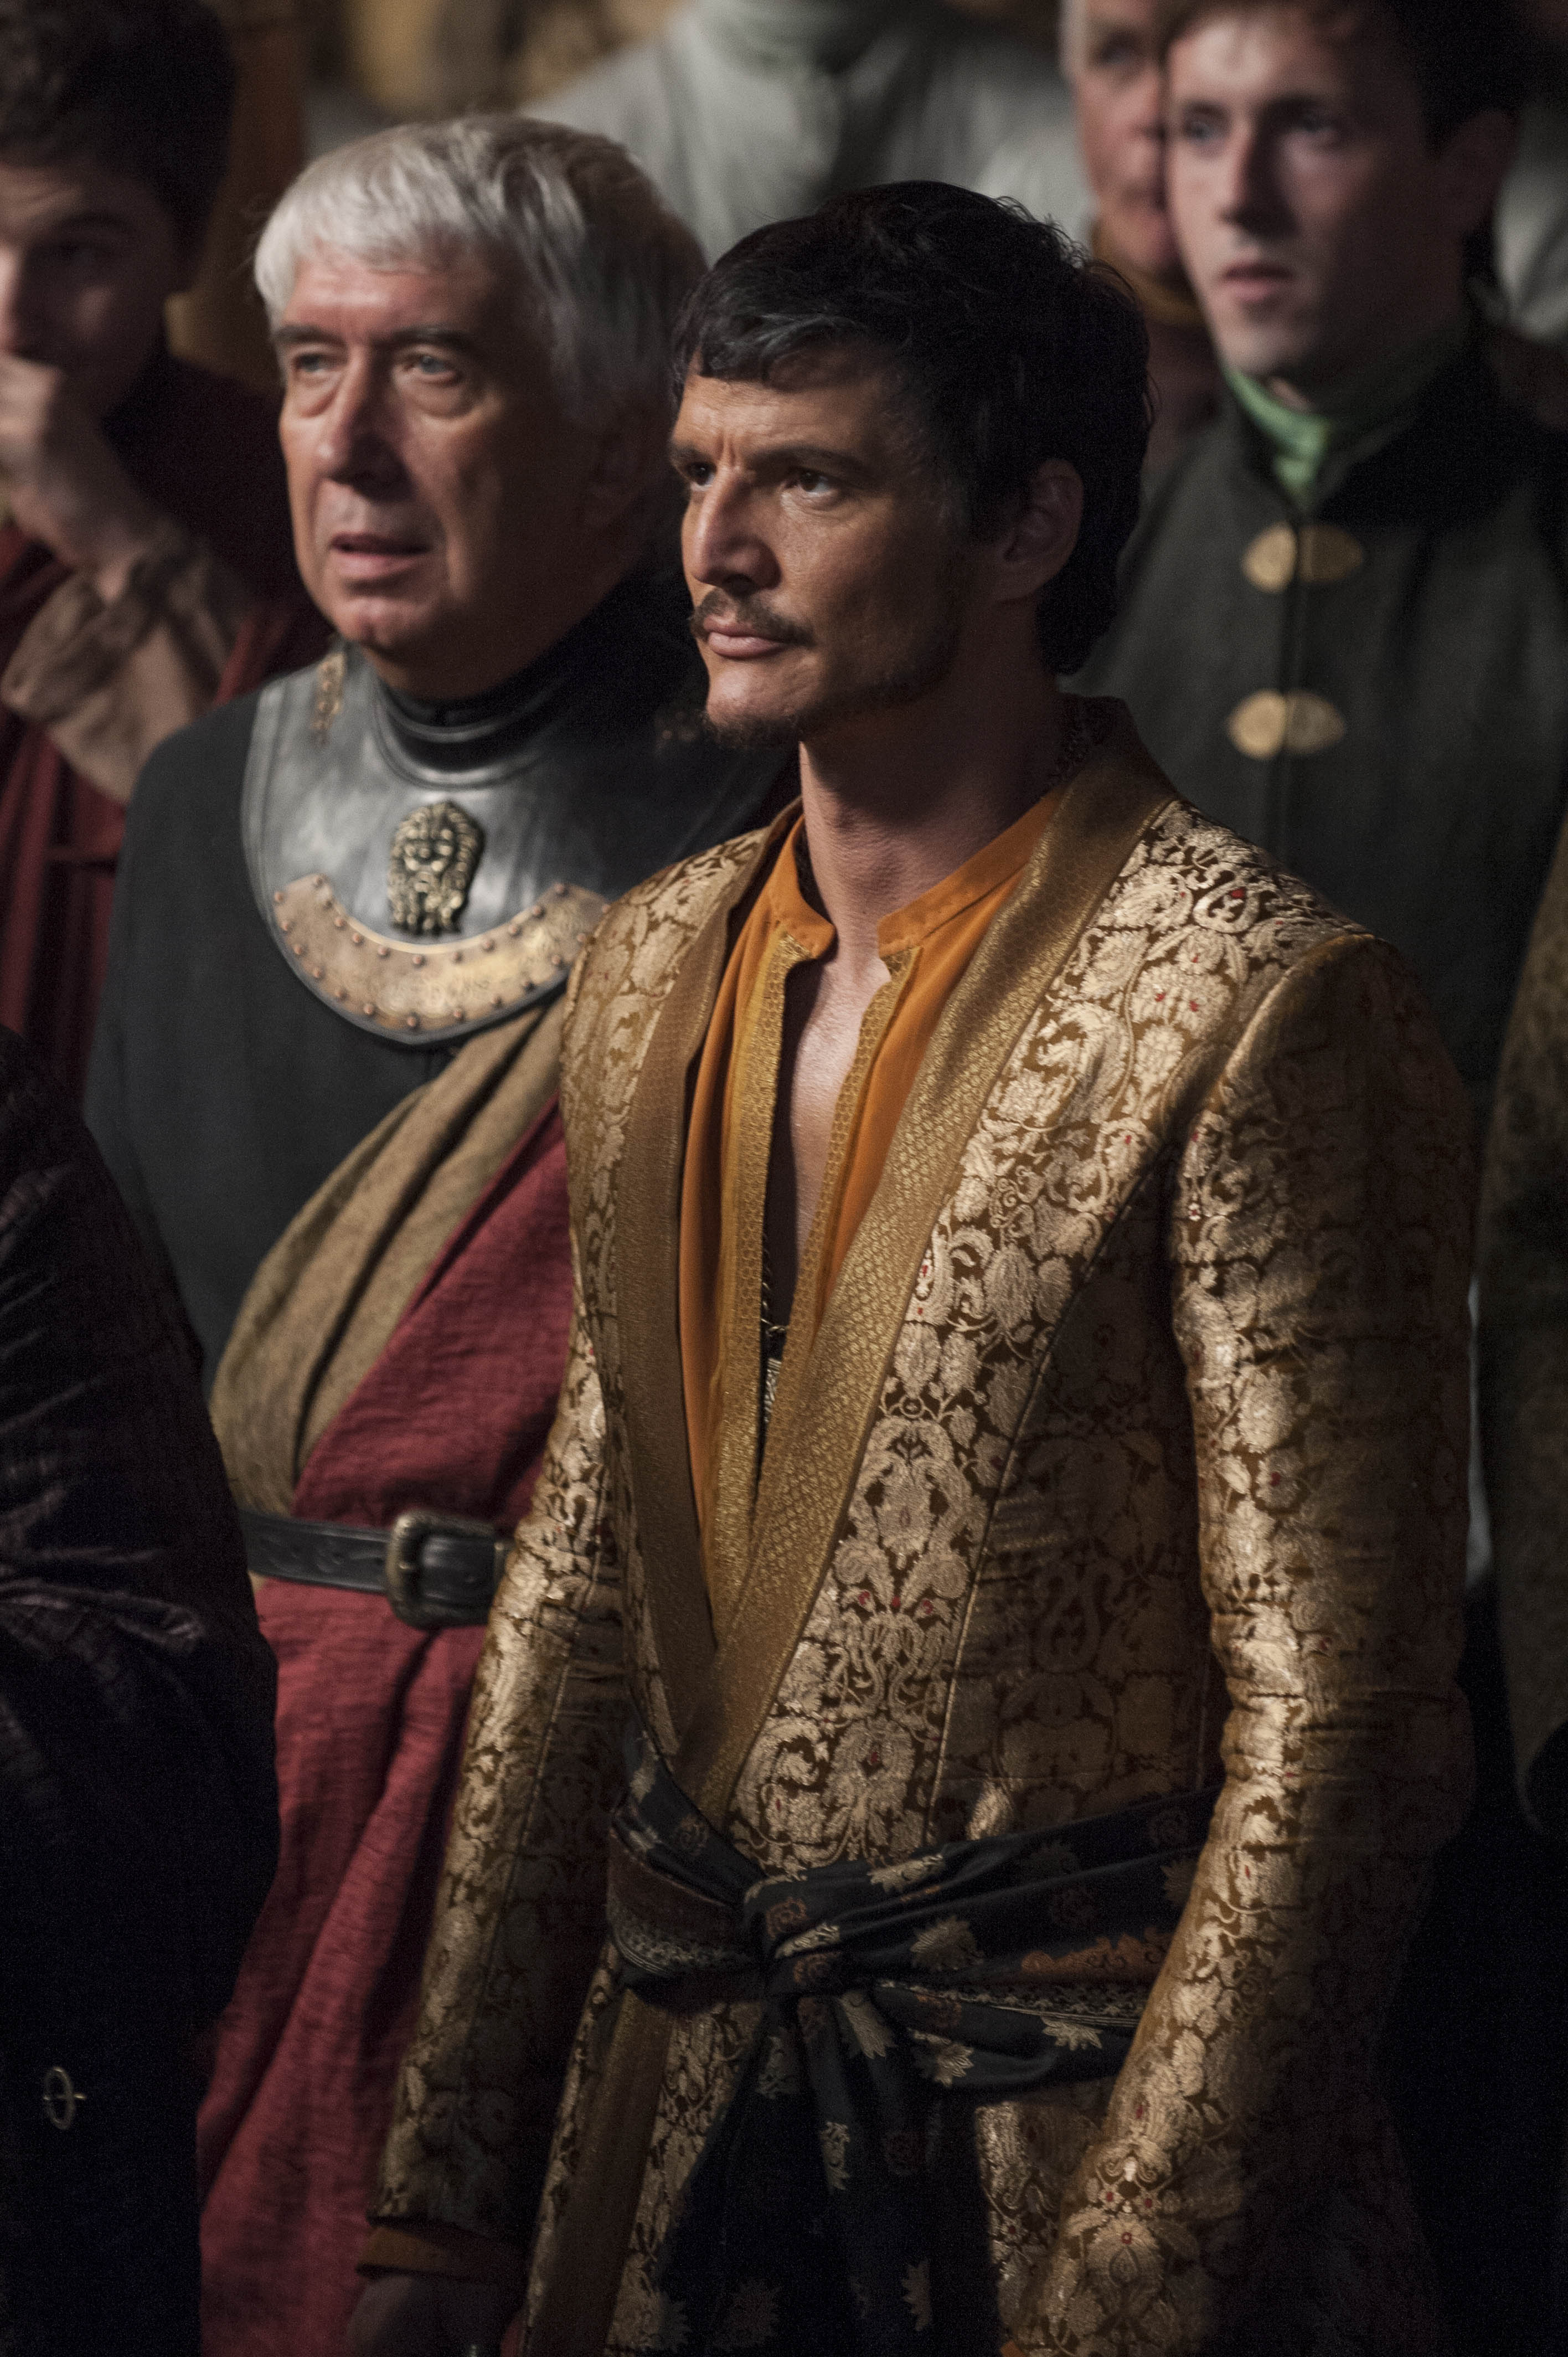 oberyn martell 39 s clothes general got a forum of ice and fire a song of ice and fire. Black Bedroom Furniture Sets. Home Design Ideas